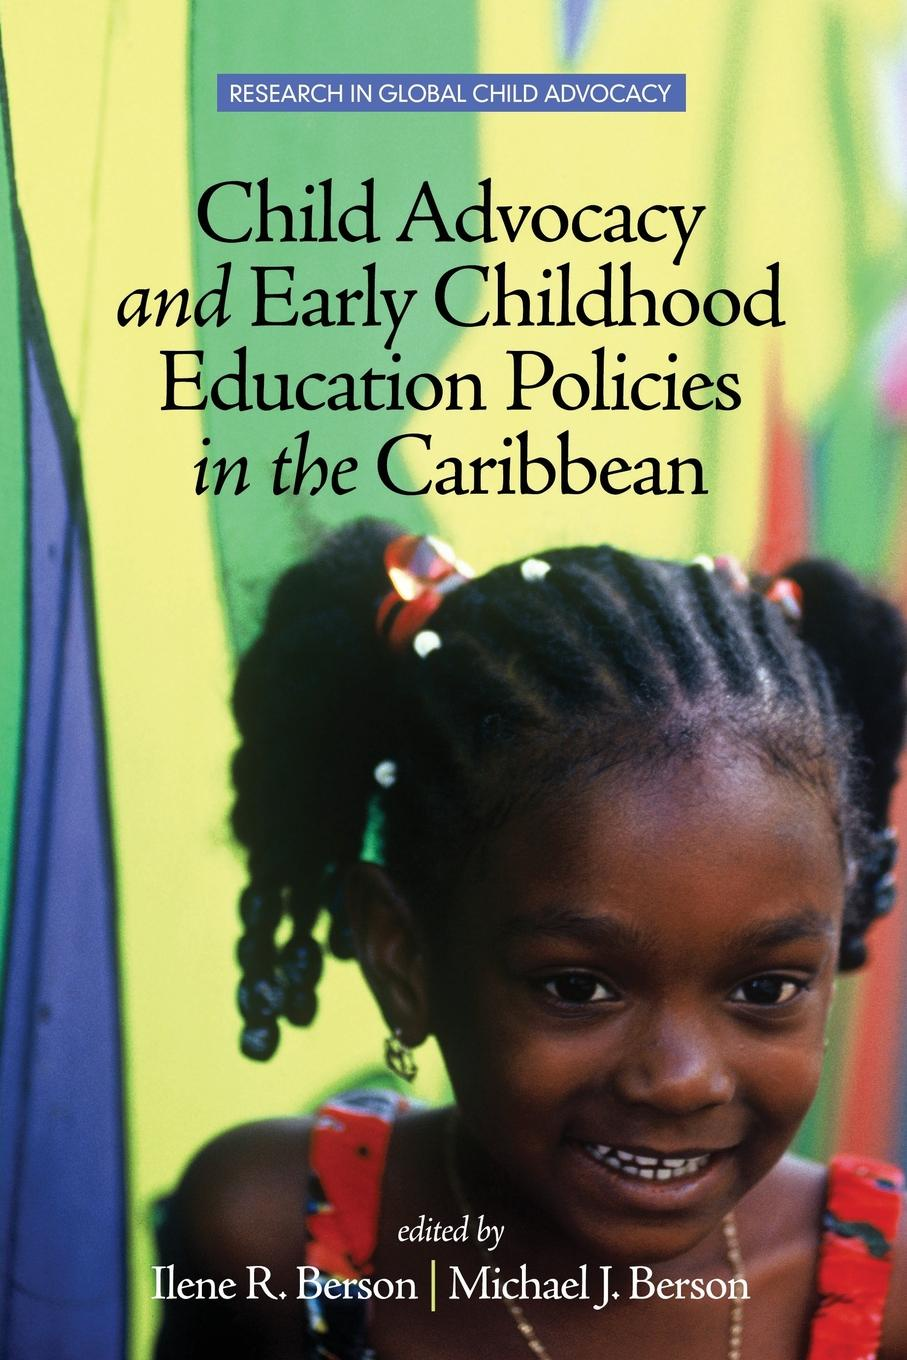 Фото - Child Advocacy and Early Childhood Education Policies in the Caribbean vocabulary spurt in early childhood development